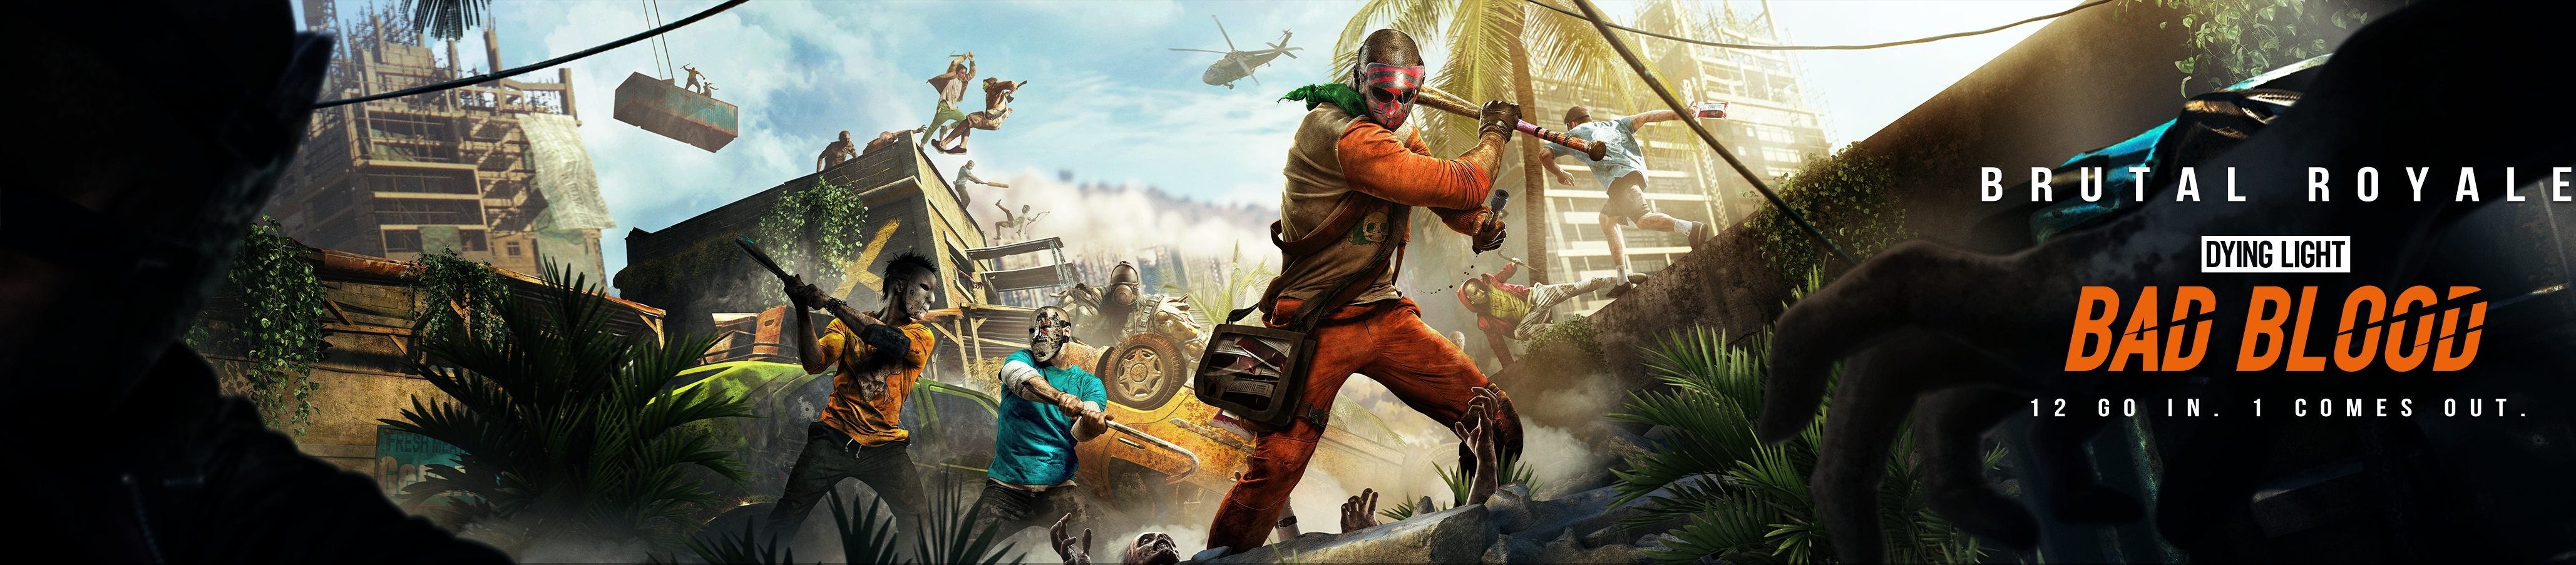 Dying Light: Bad Blood Out Now on Steam Early Access